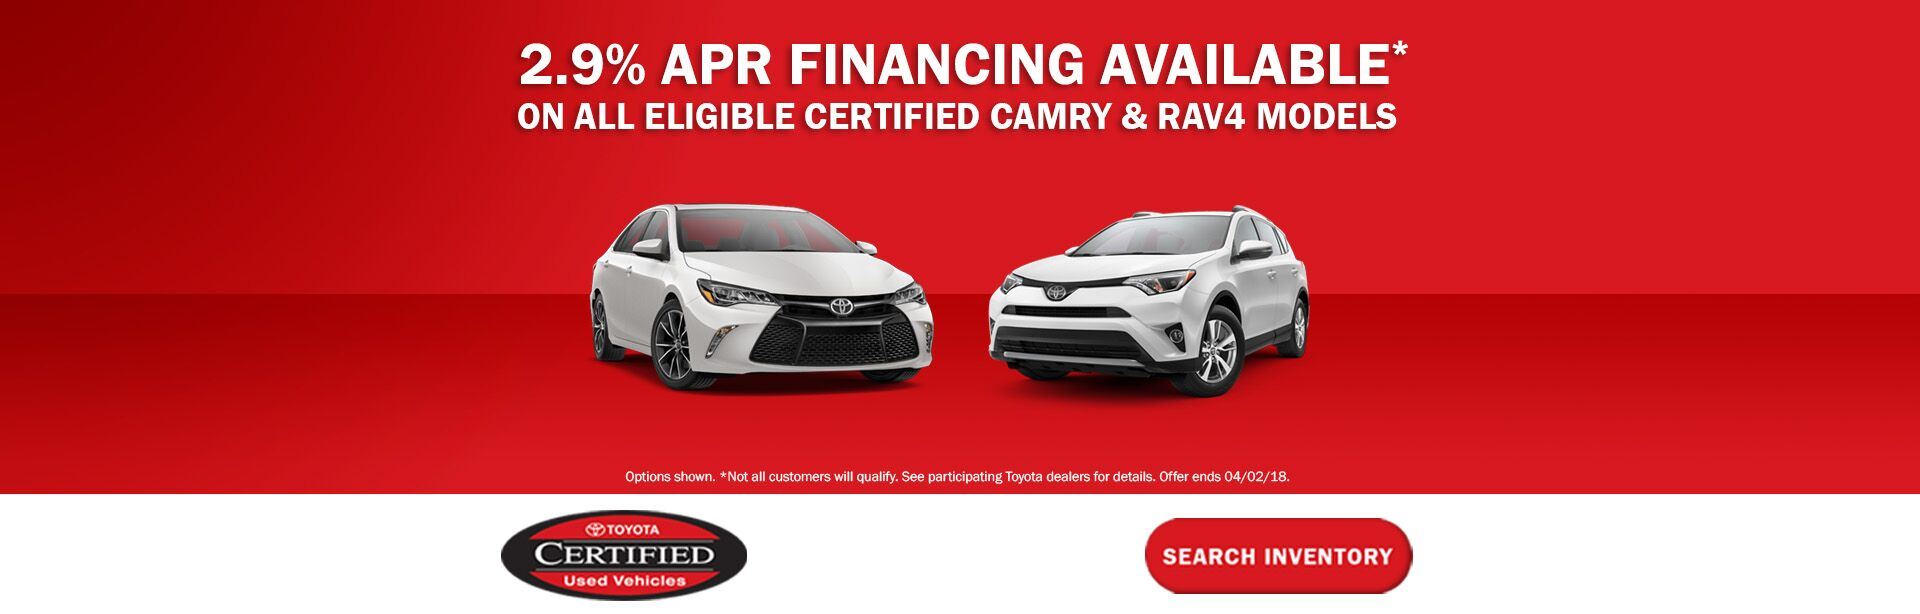 Toyota Certified Used Cars at Oroville Toyota